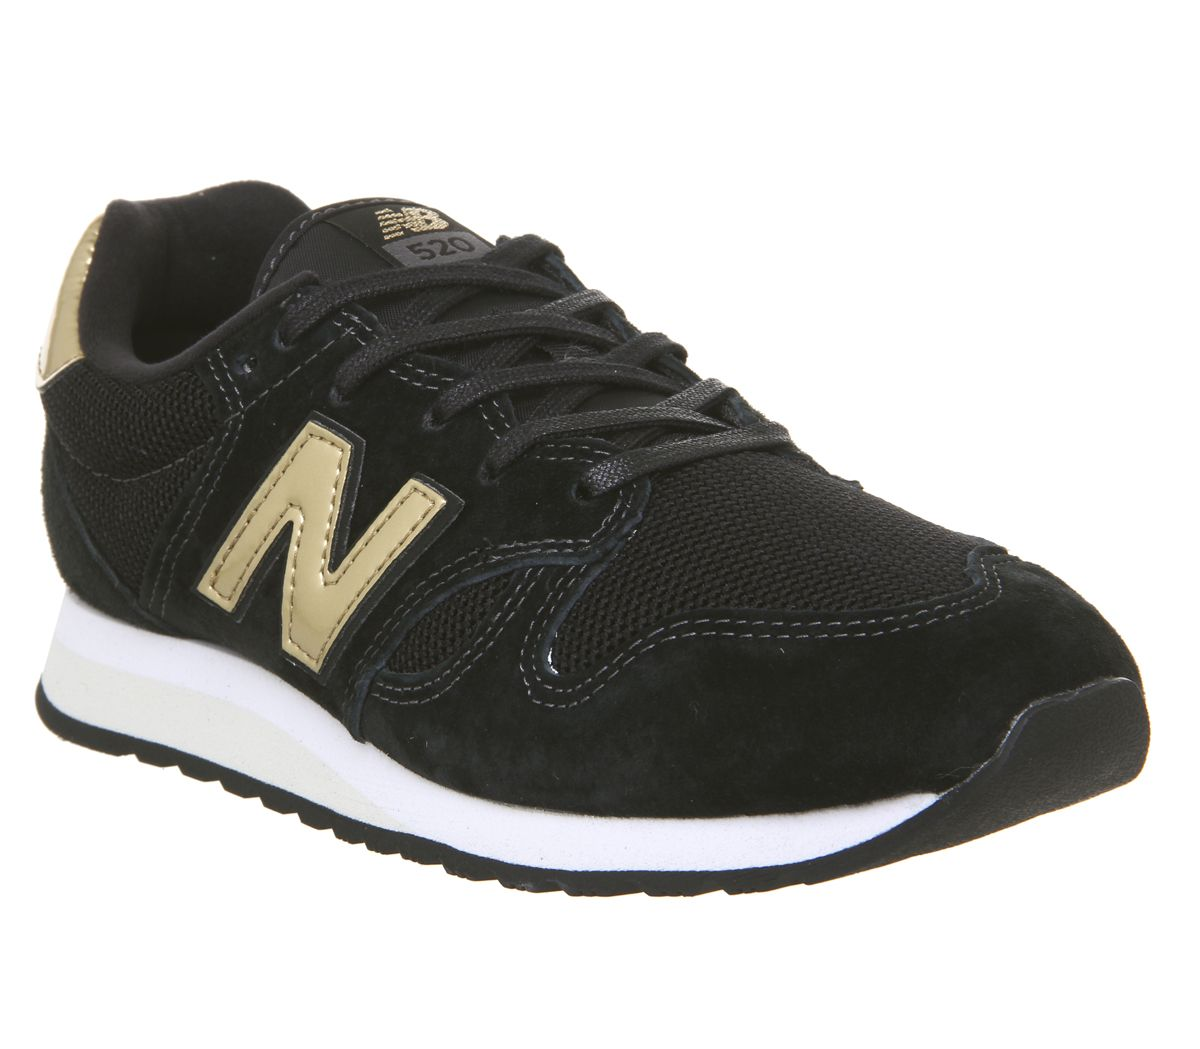 meilleures baskets 7eca9 74976 New Balance 520 Trainers Black Classic Gold - Hers trainers